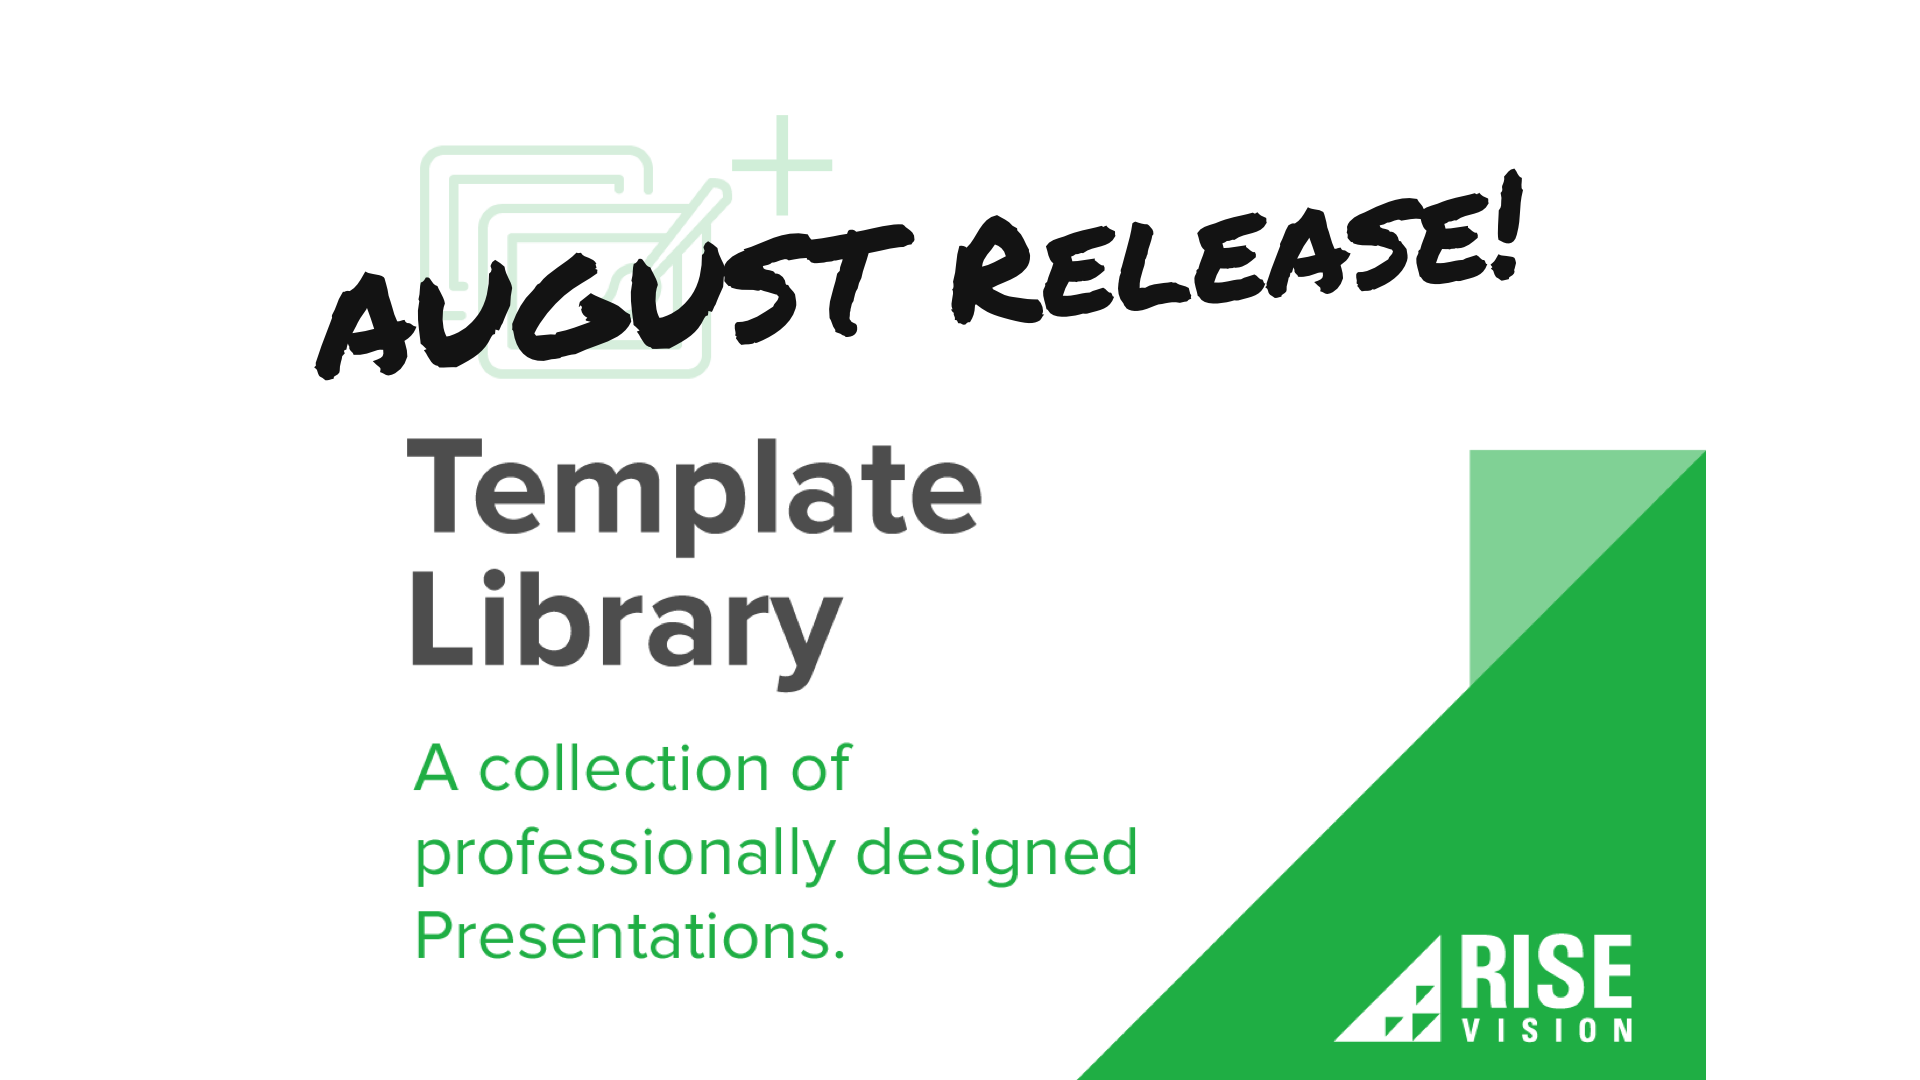 template library digital signage